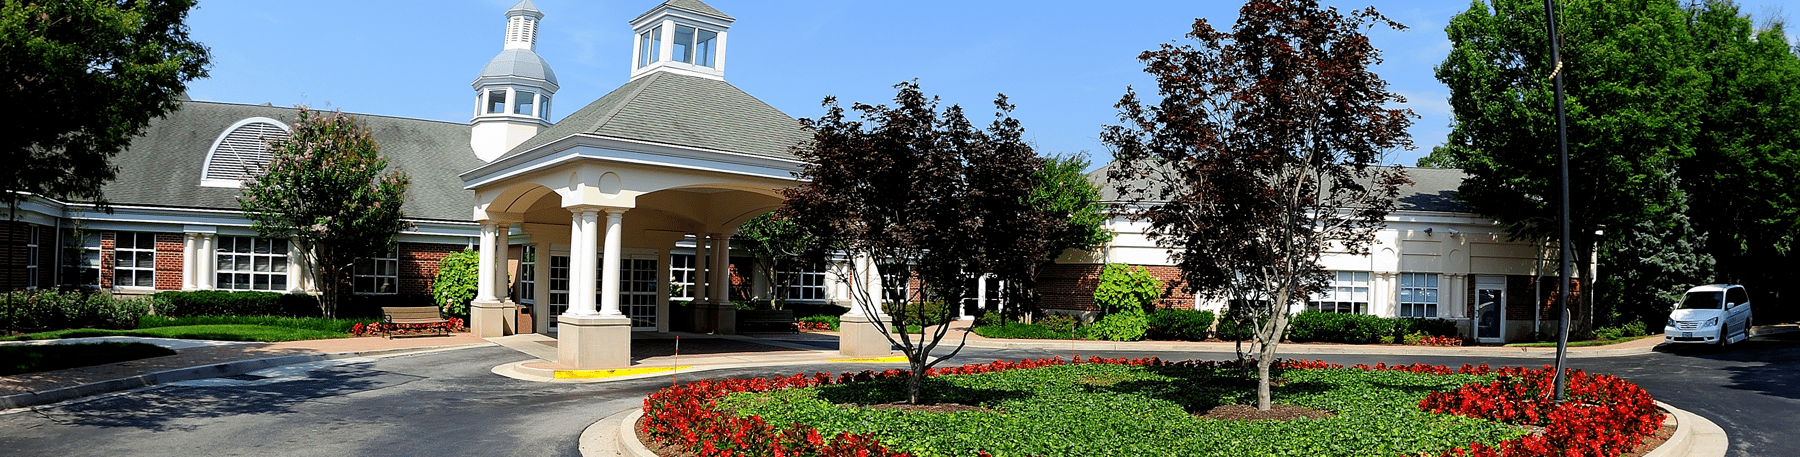 Photo of Blakehurst, Assisted Living, Nursing Home, Independent Living, CCRC, Towson, MD 7